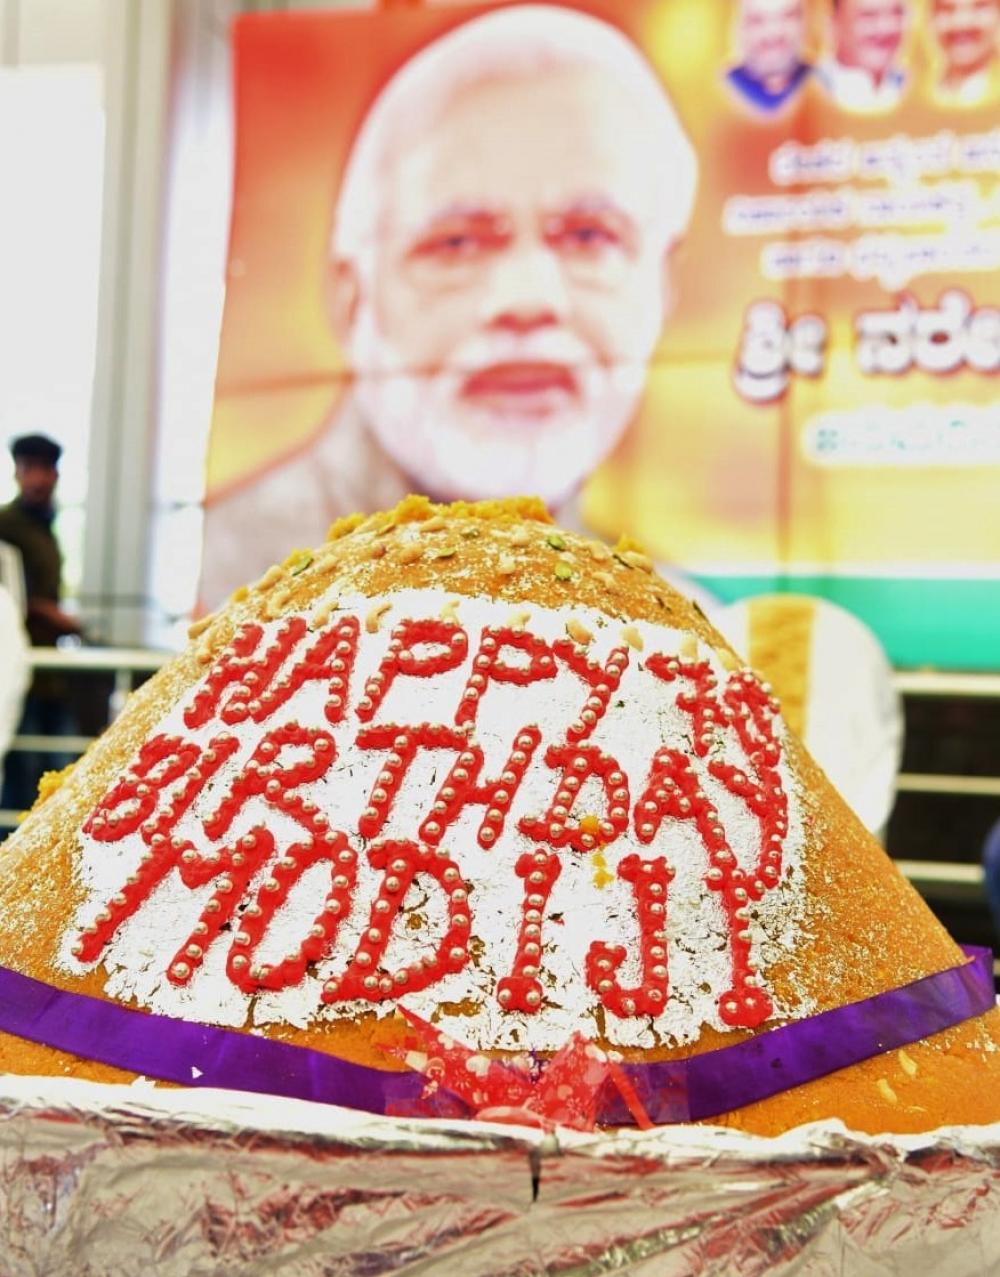 The Weekend Leader - BJP to celebrate PM's birthday with public service programs across India